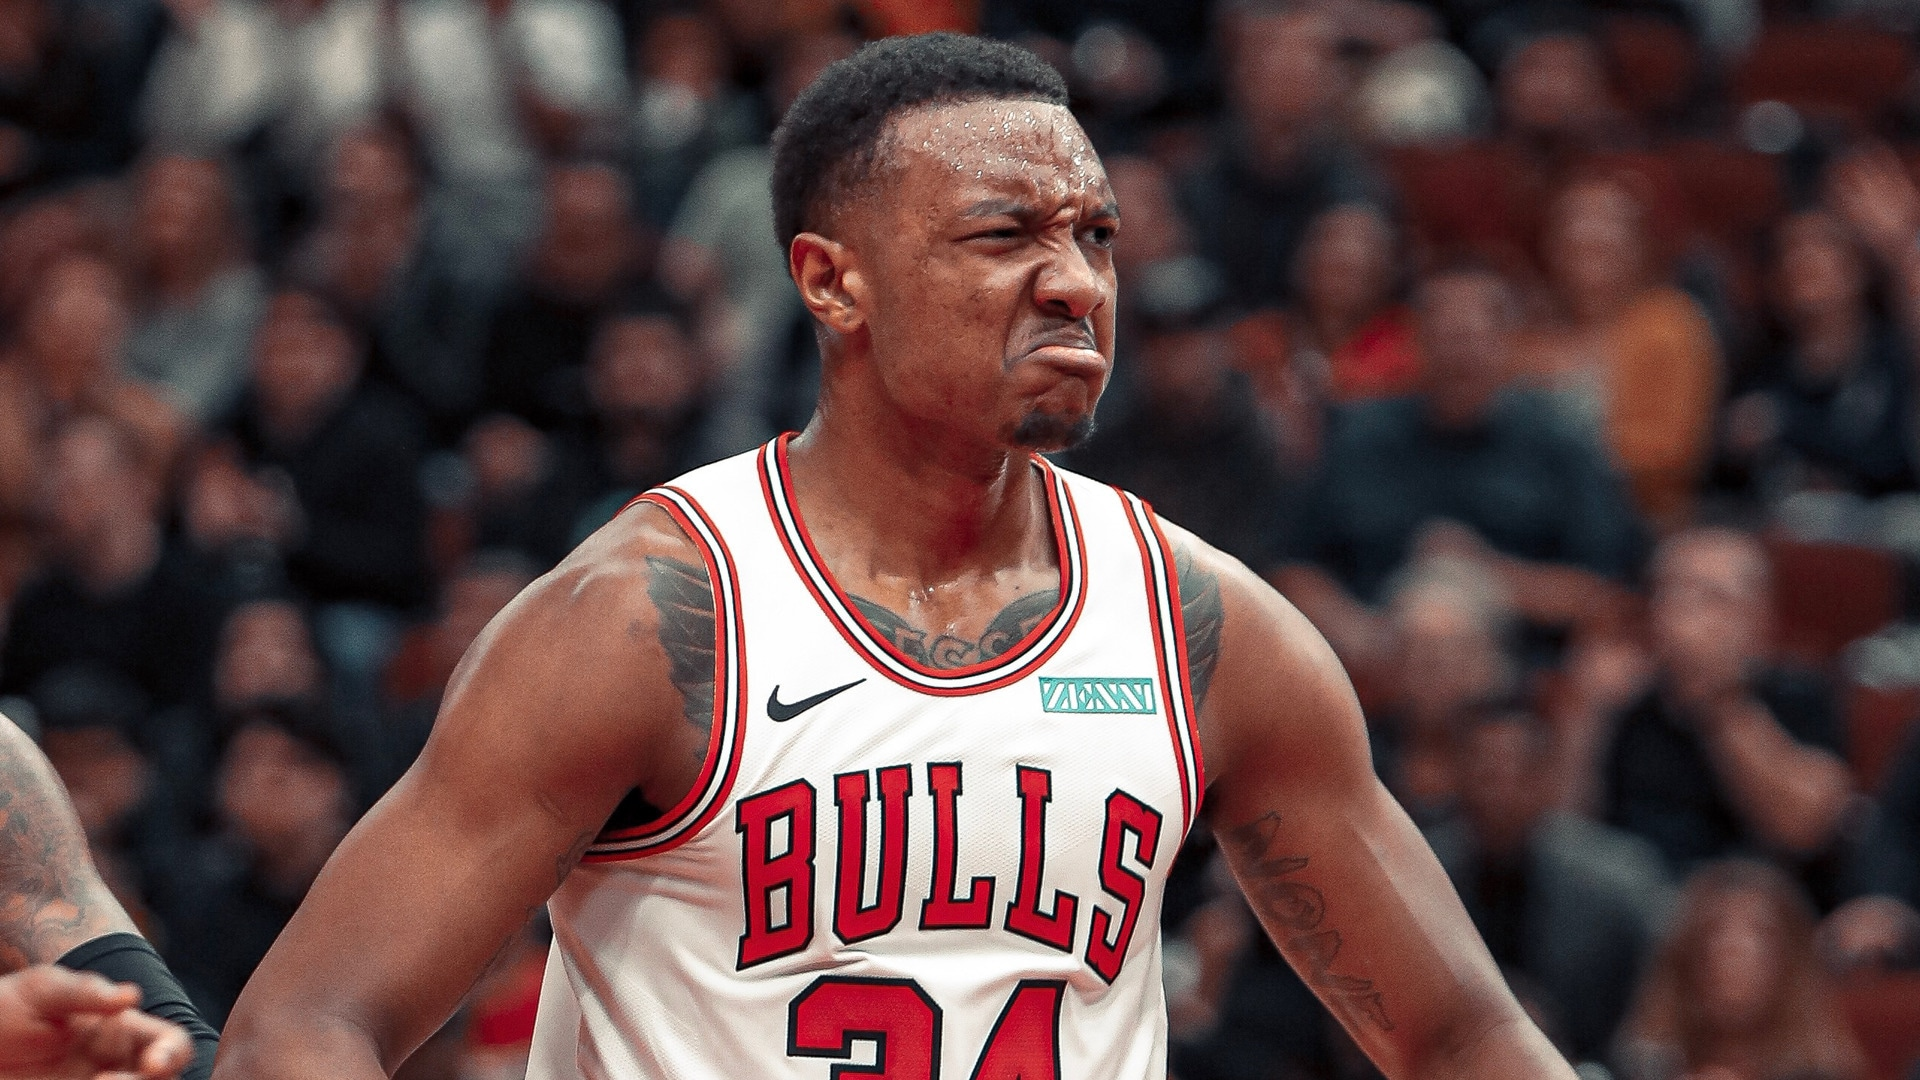 Wendell Carter Jr. Top 10 Plays | 19-20 Season